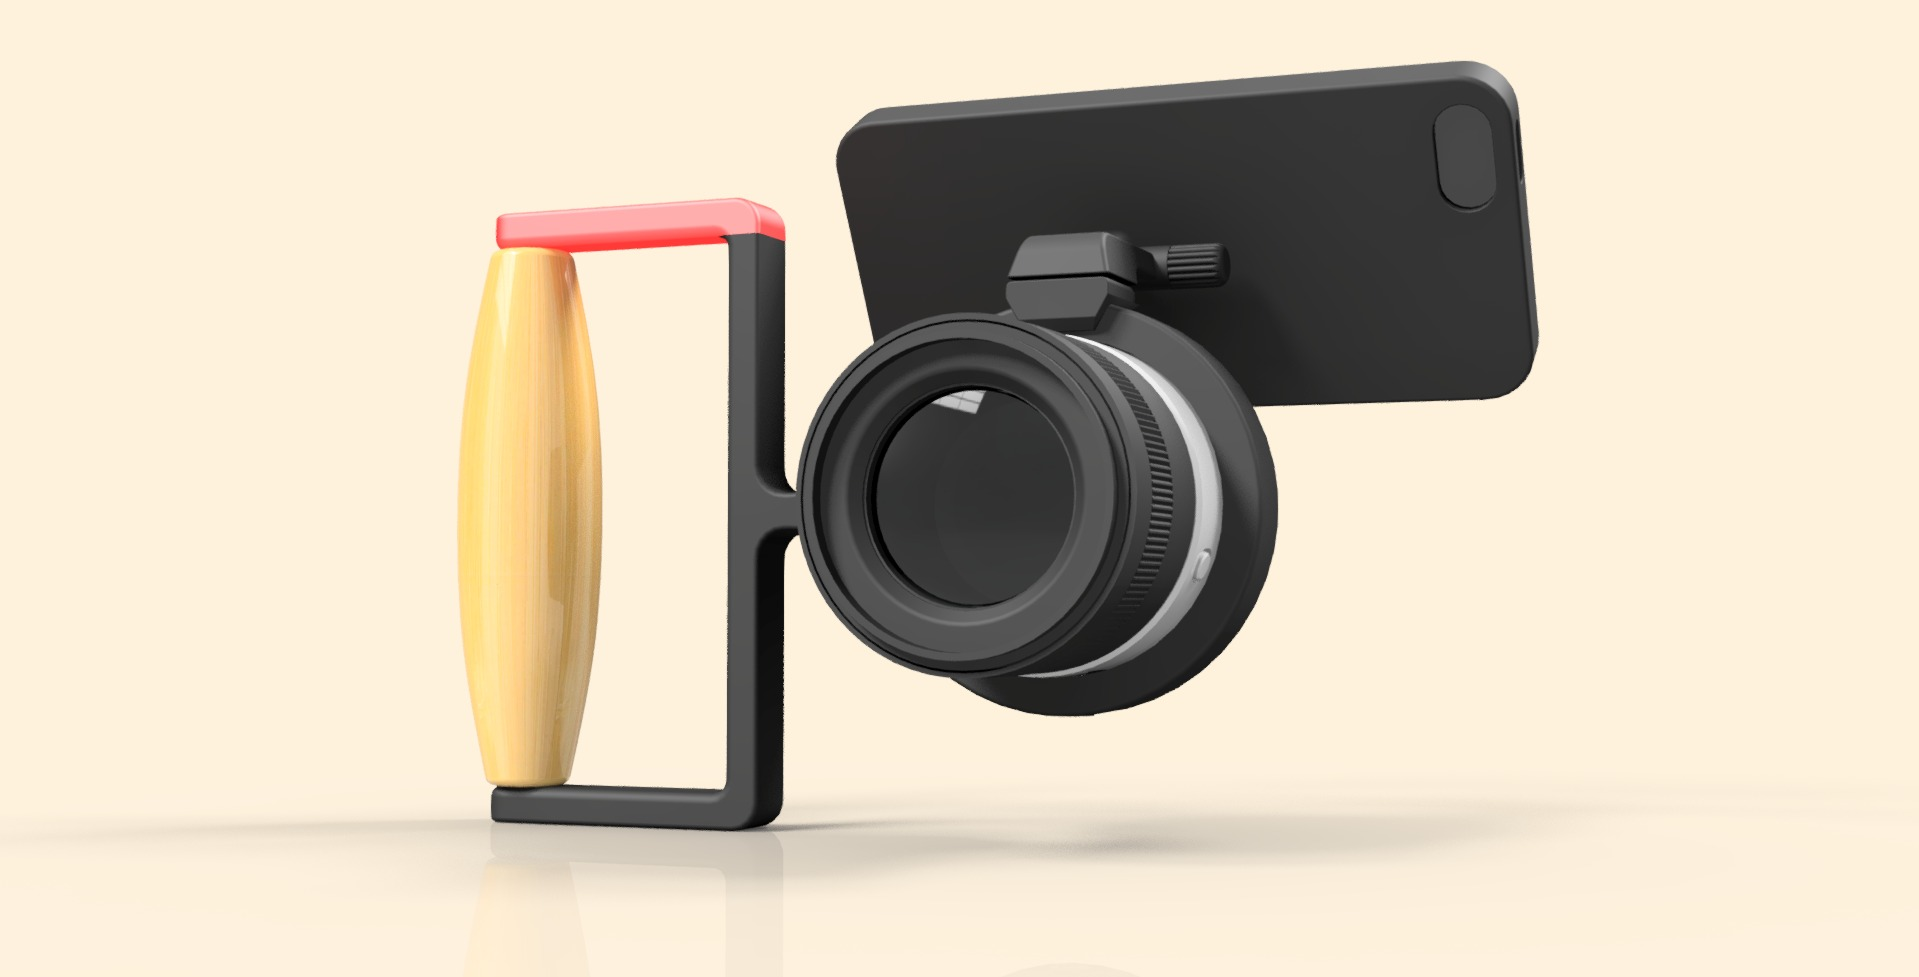 Rt_front_low_w_phone_holder